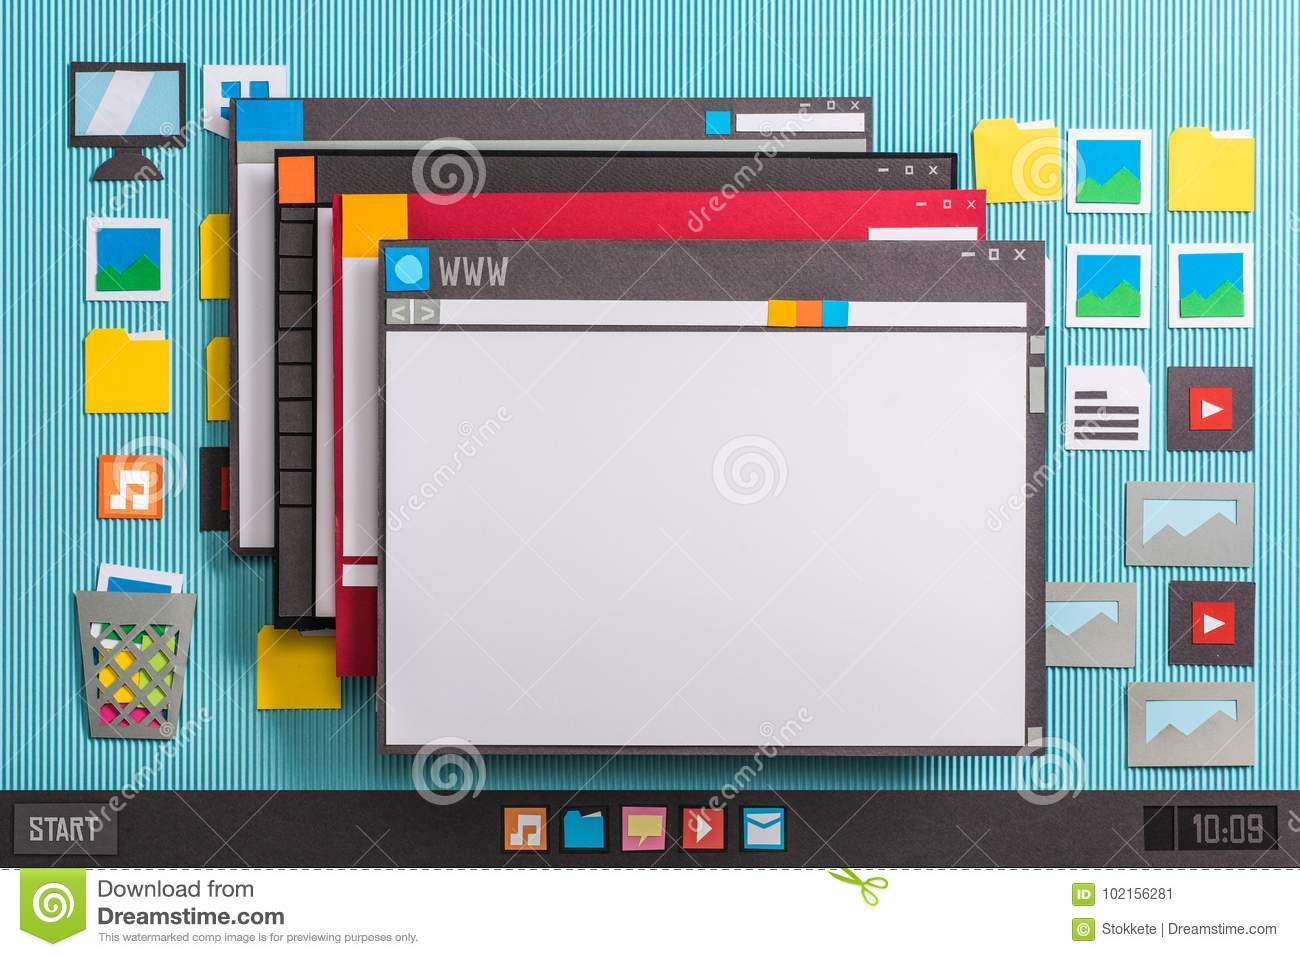 Multiple windows stock image  Image of open, collage - 102156281